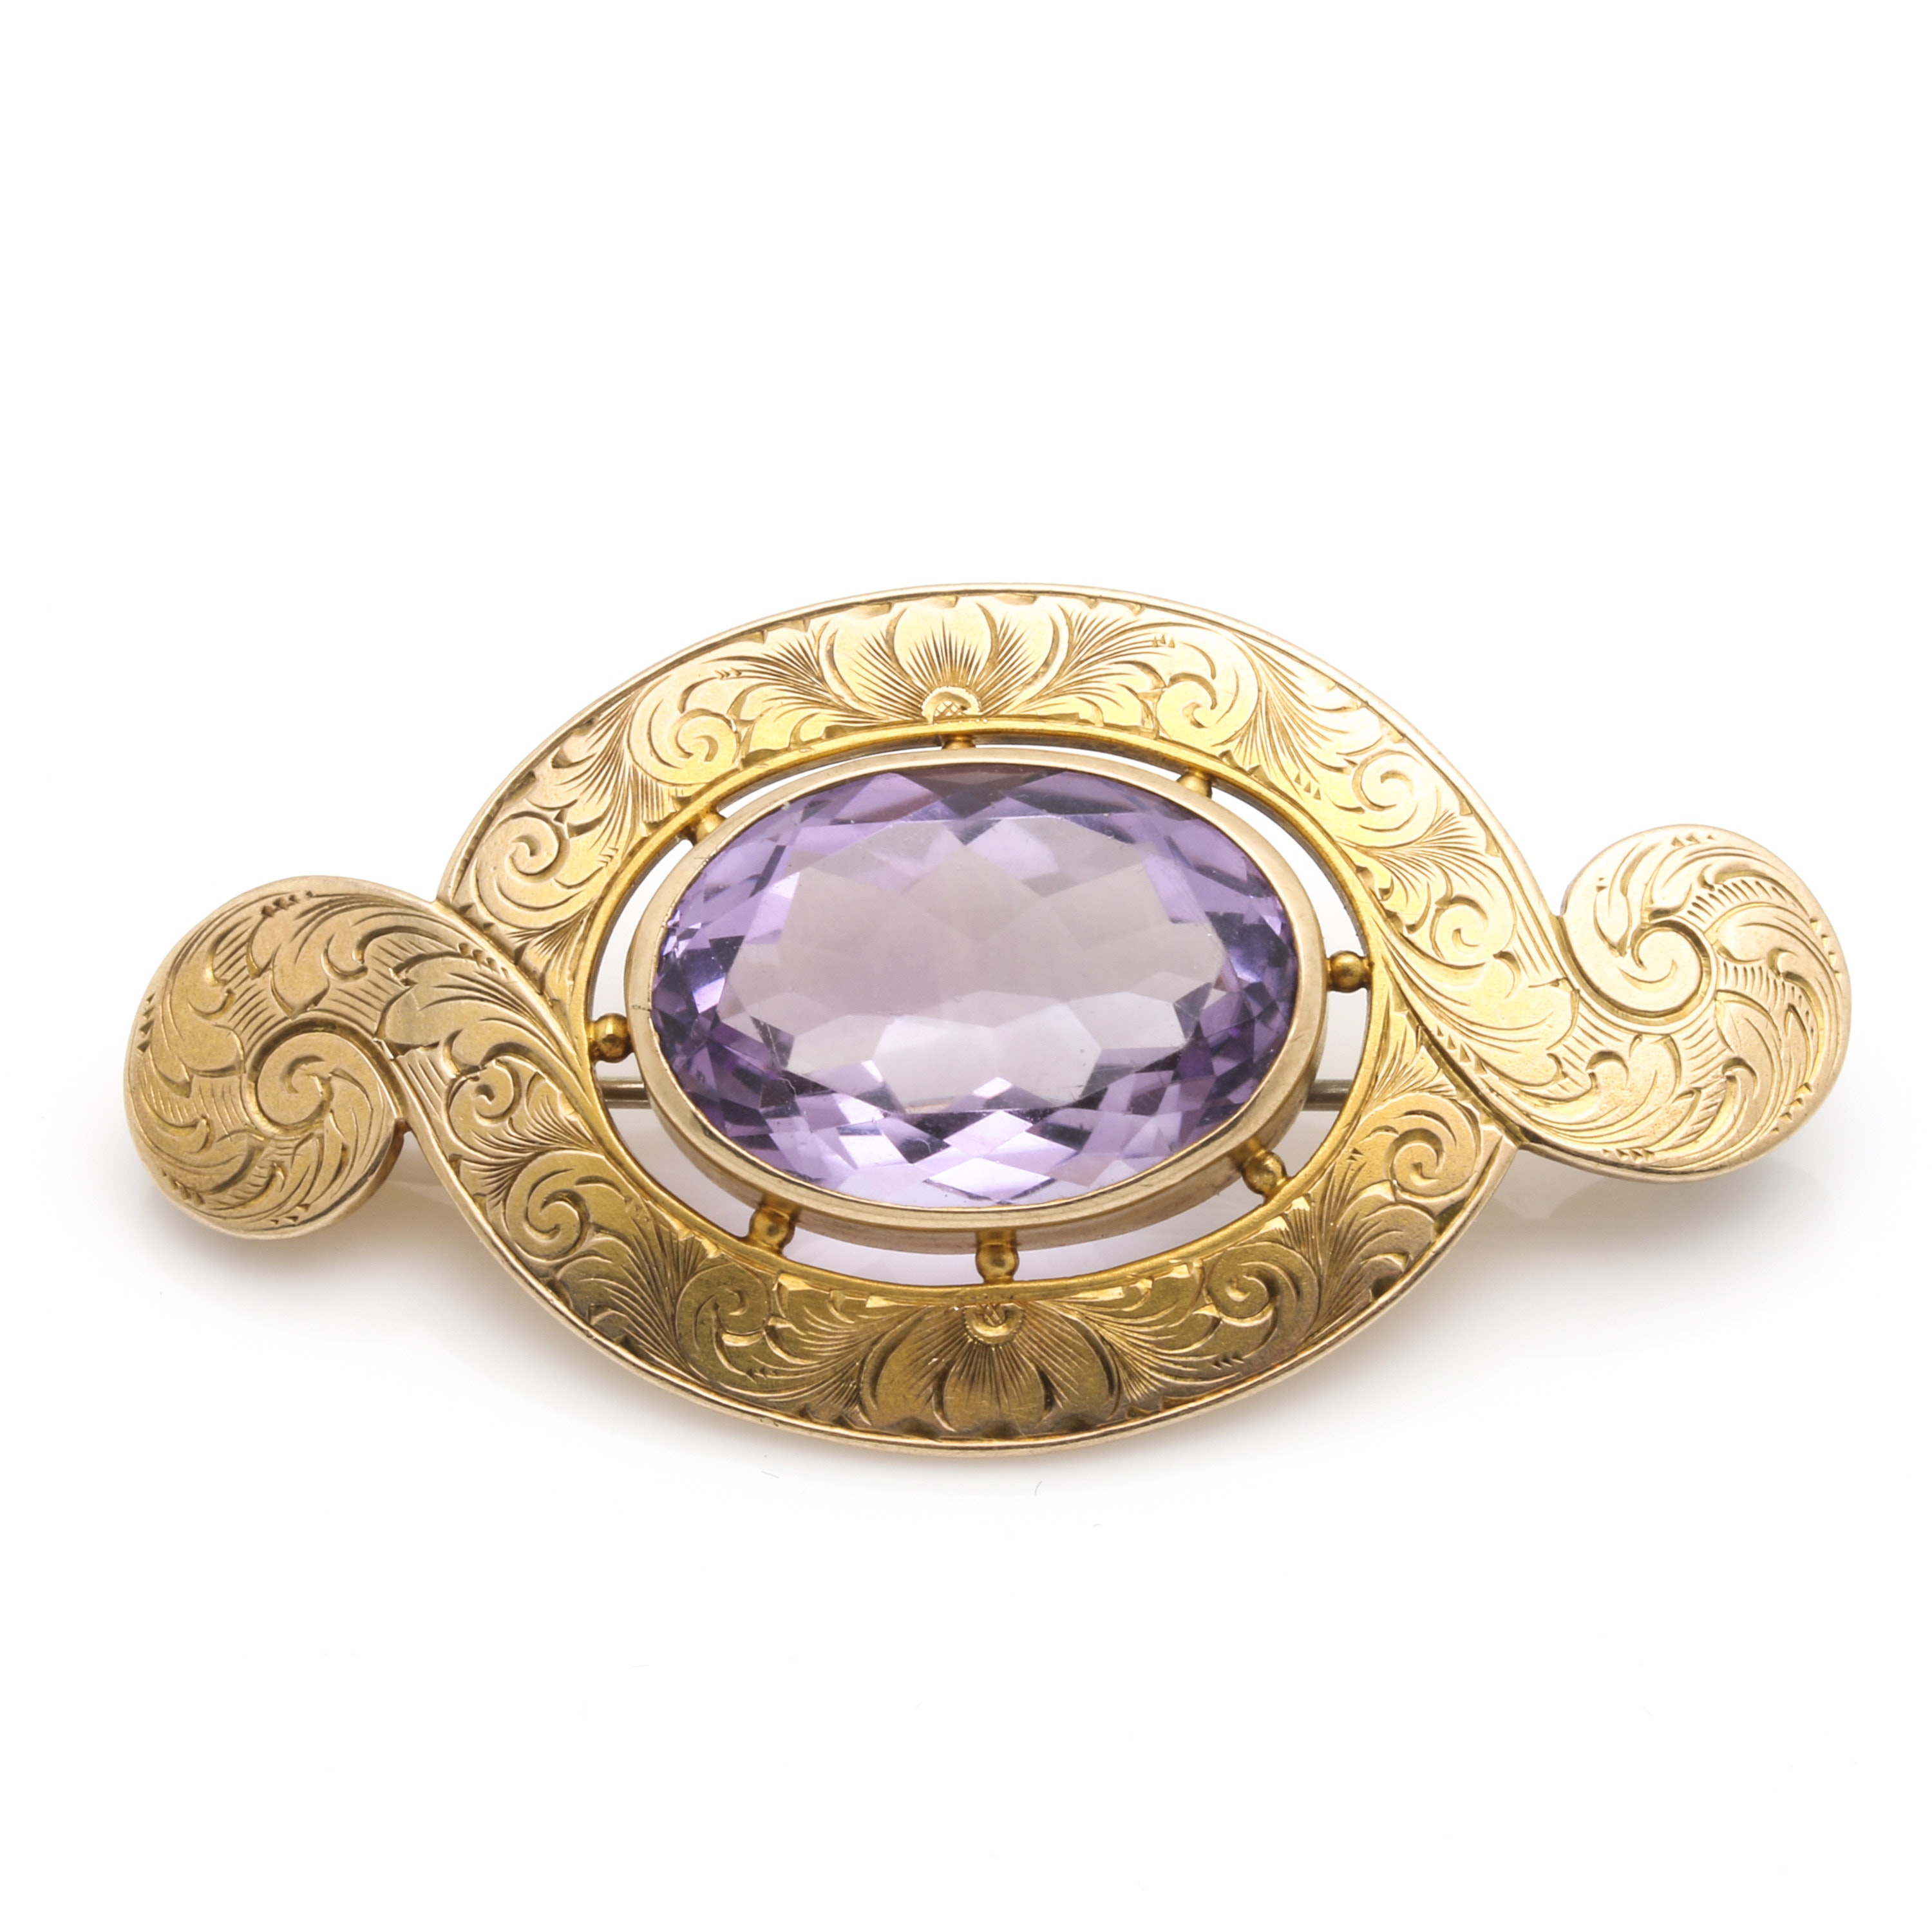 Victorian Style 10K Yellow Gold 11.59 CT Amethyst Brooch